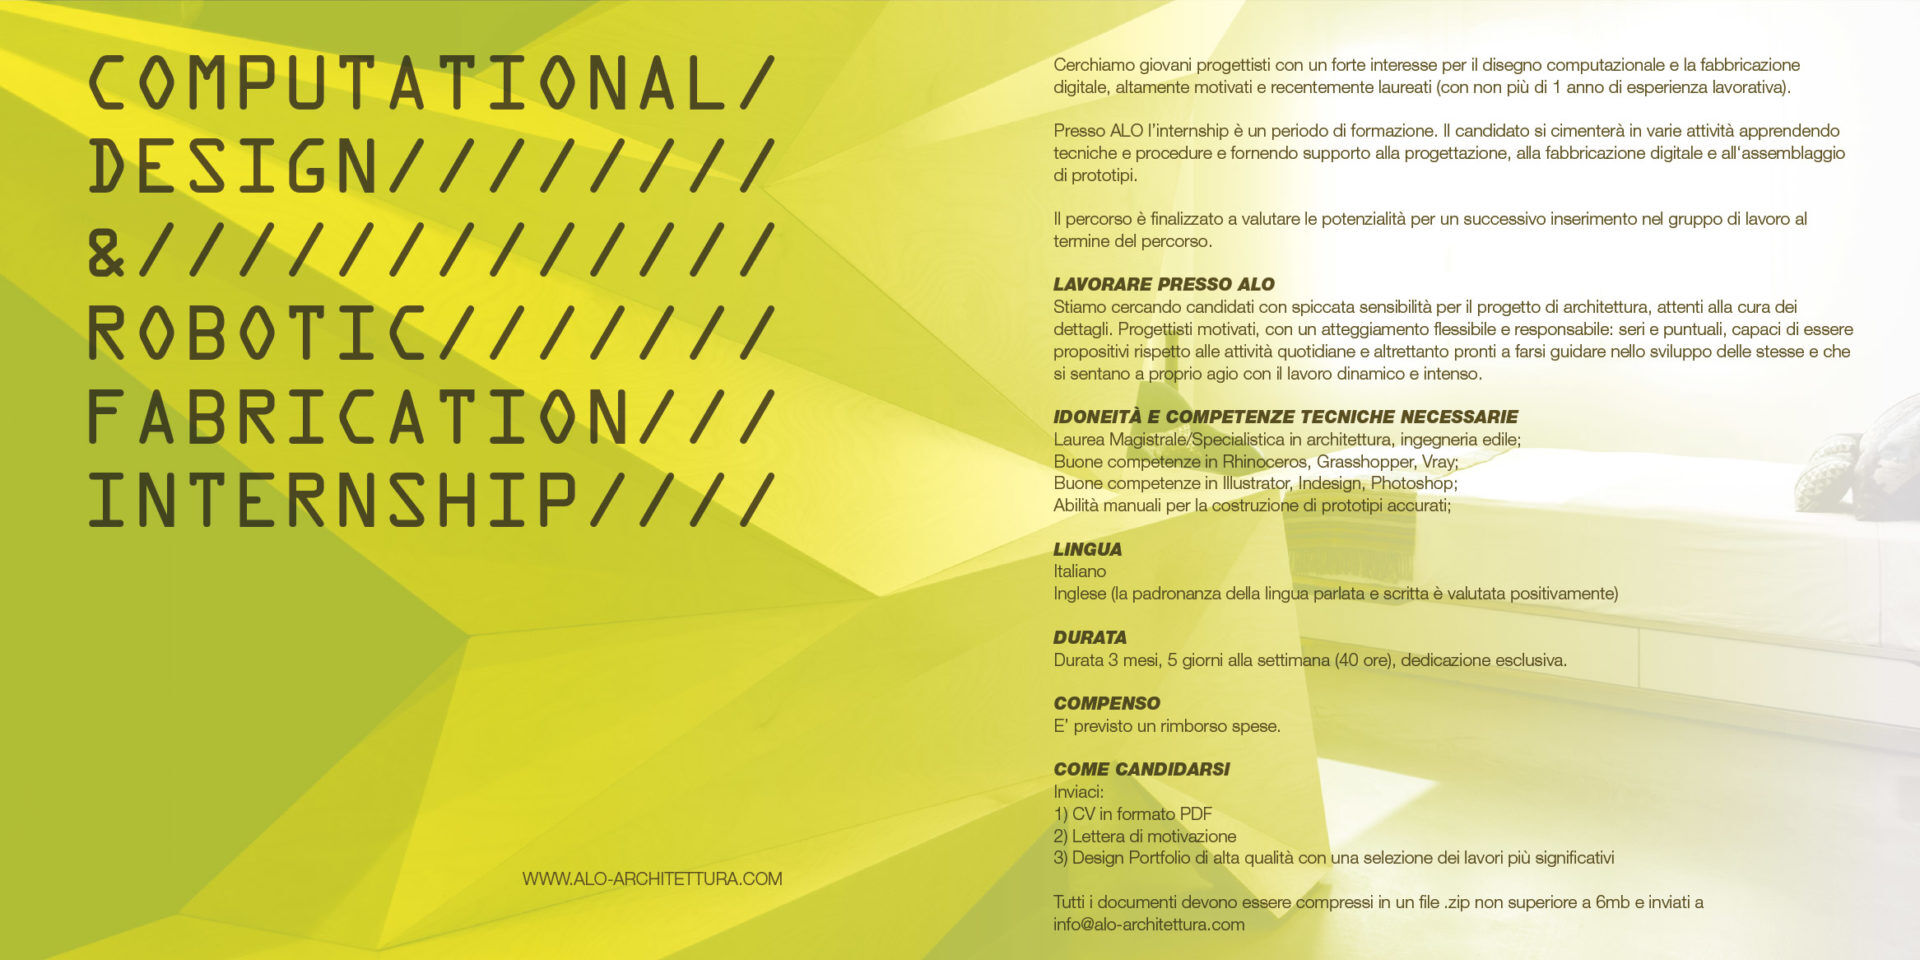 Studio Di Architettura In Inglese computational design & robotic fabrication internship